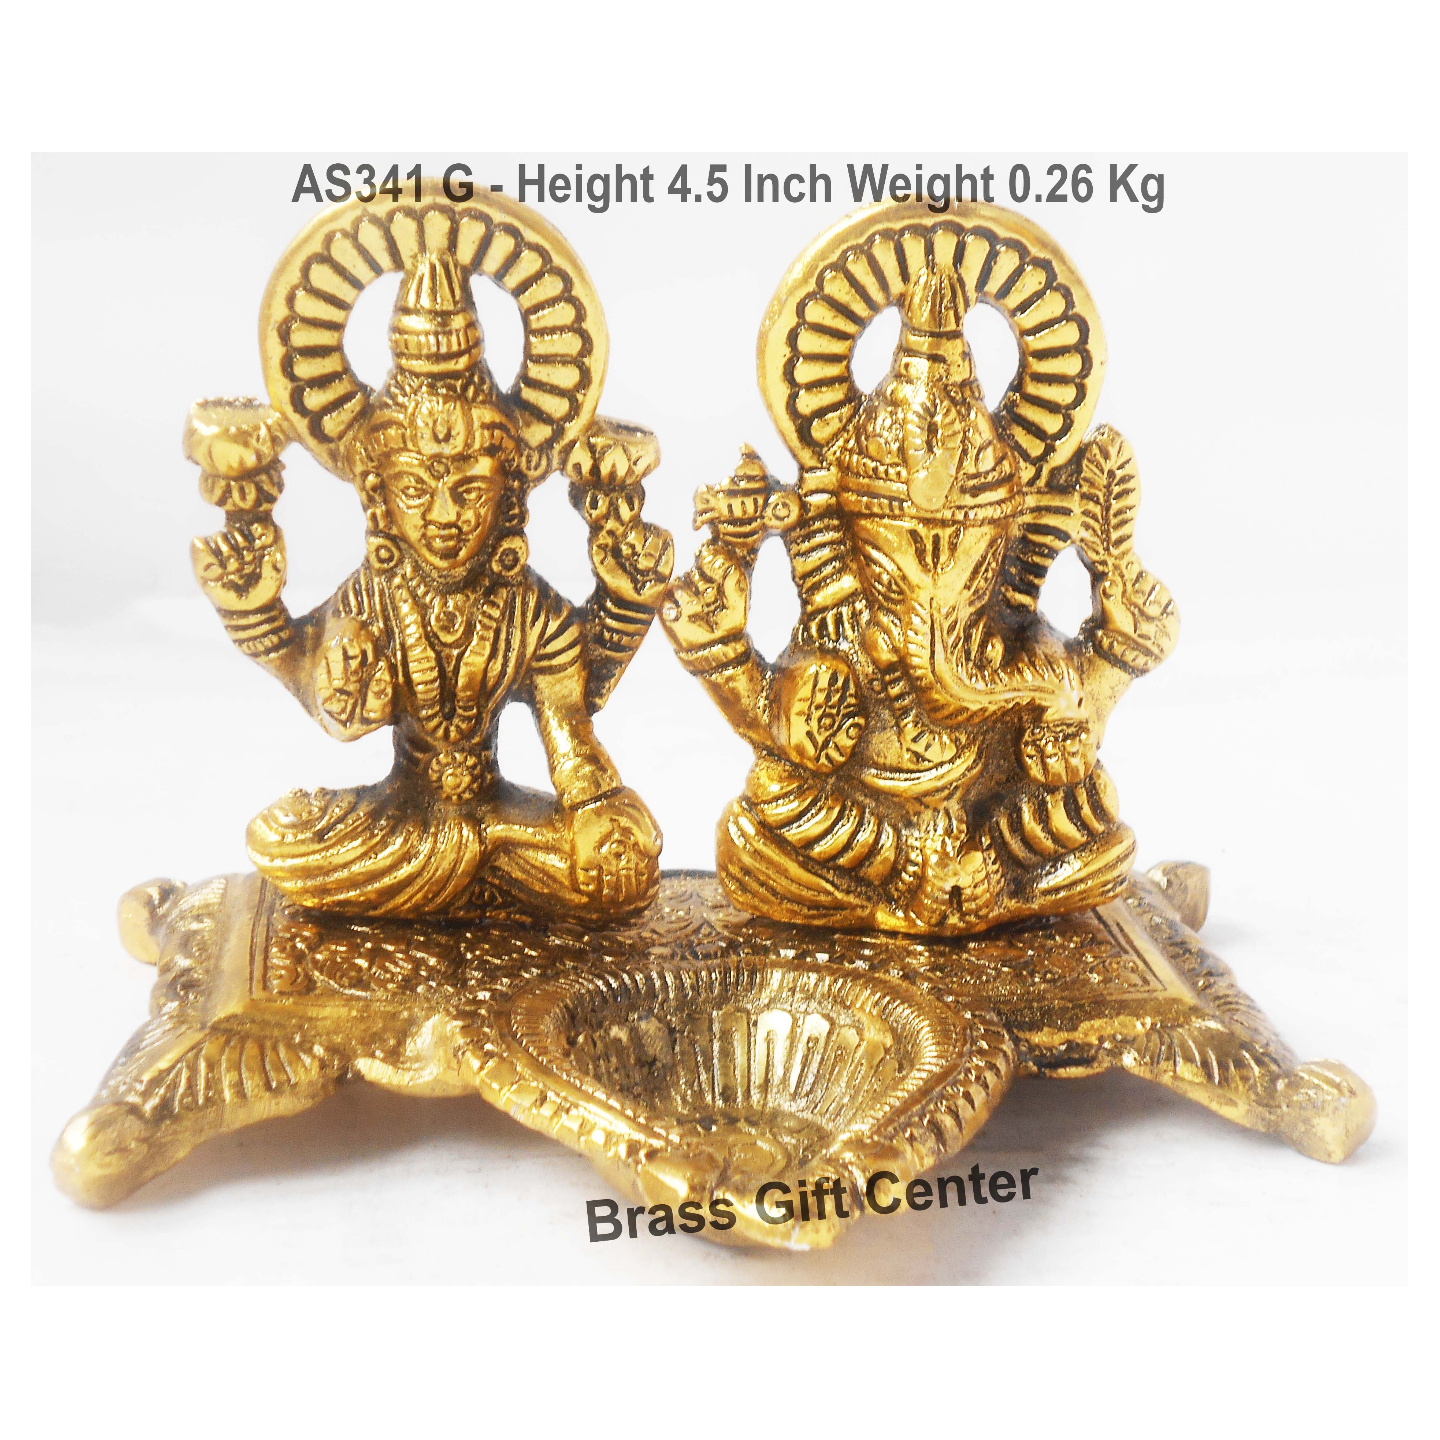 Laxmi Ganesh Deepak in Gold Antiqie finish - 5x4.5x4.5 inch AS341 G